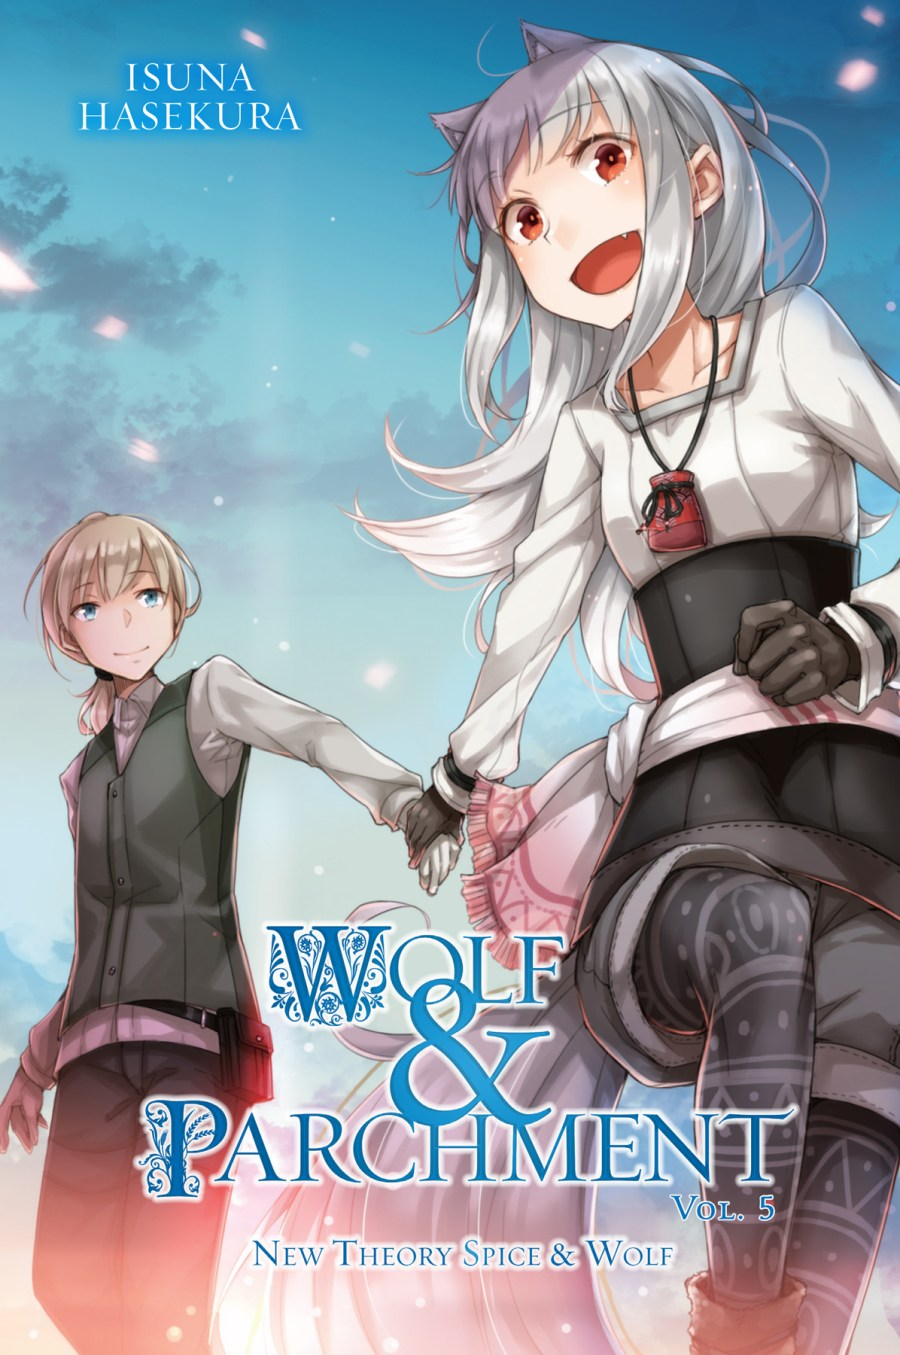 Wolf & Parchment: New Theory Spice & WolfVolume 5